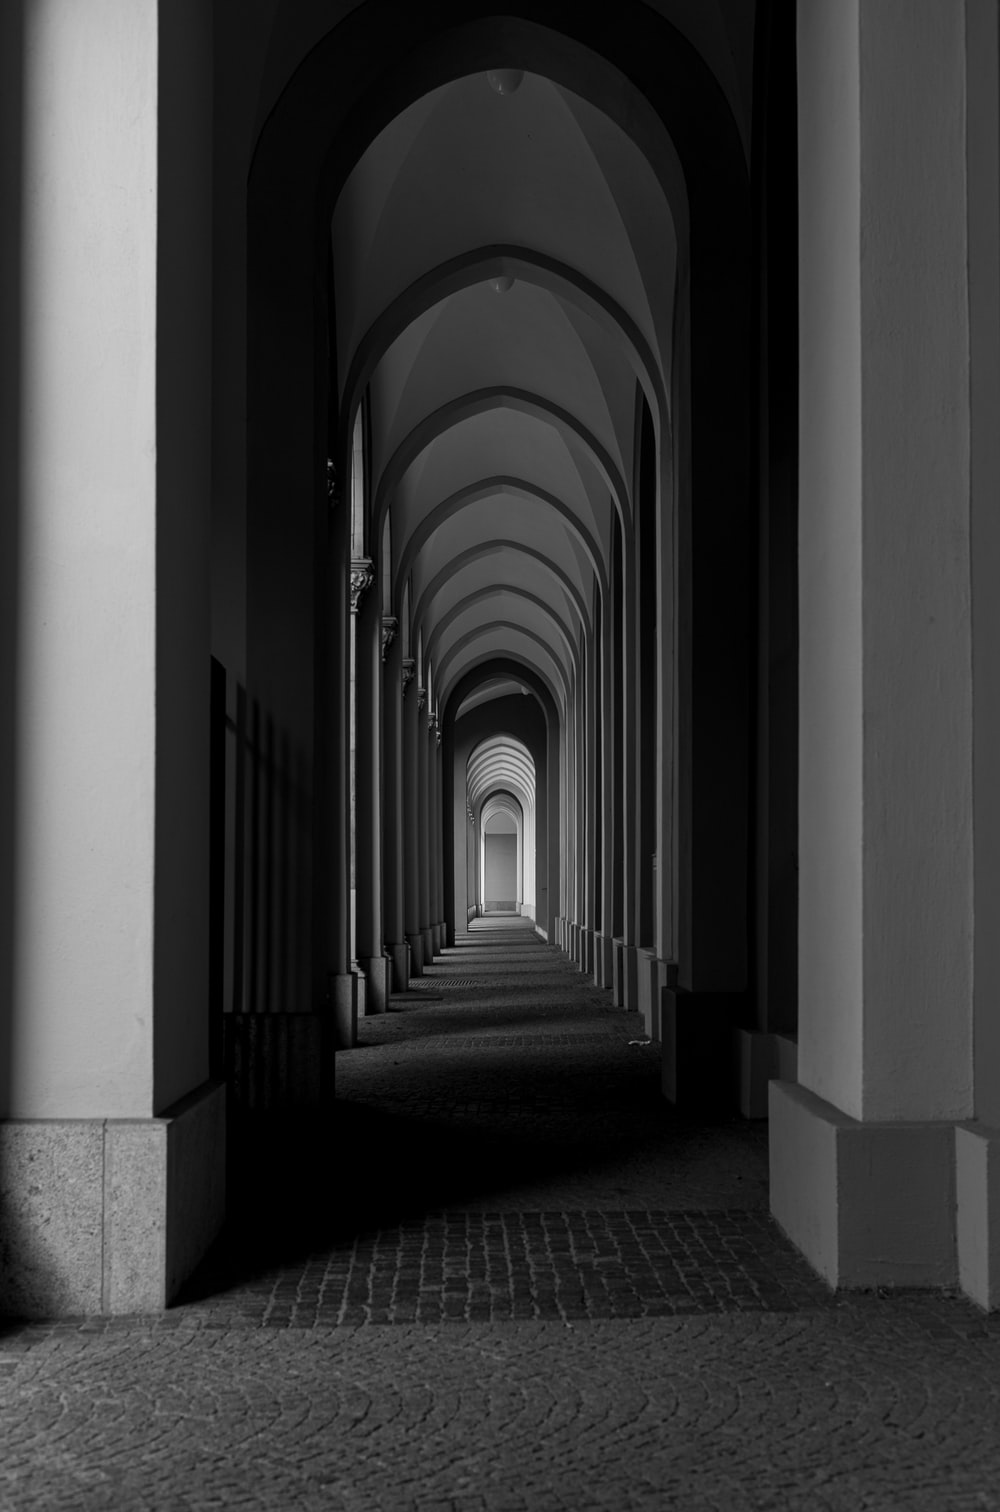 grayscale photo of hallway with columns